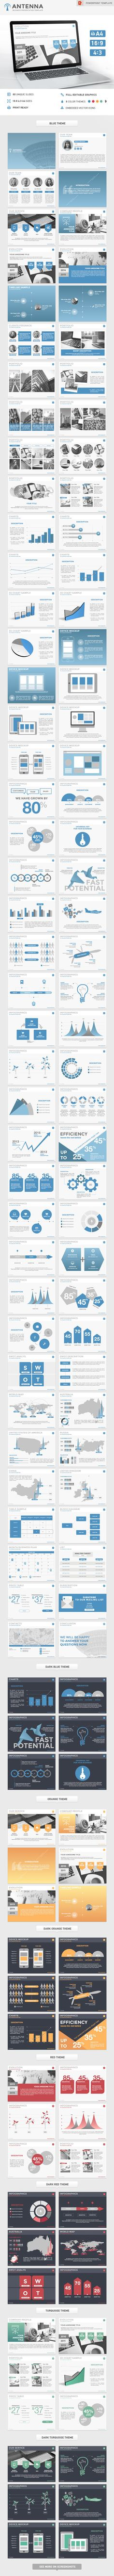 Antenna PowerPoint Presentation Template